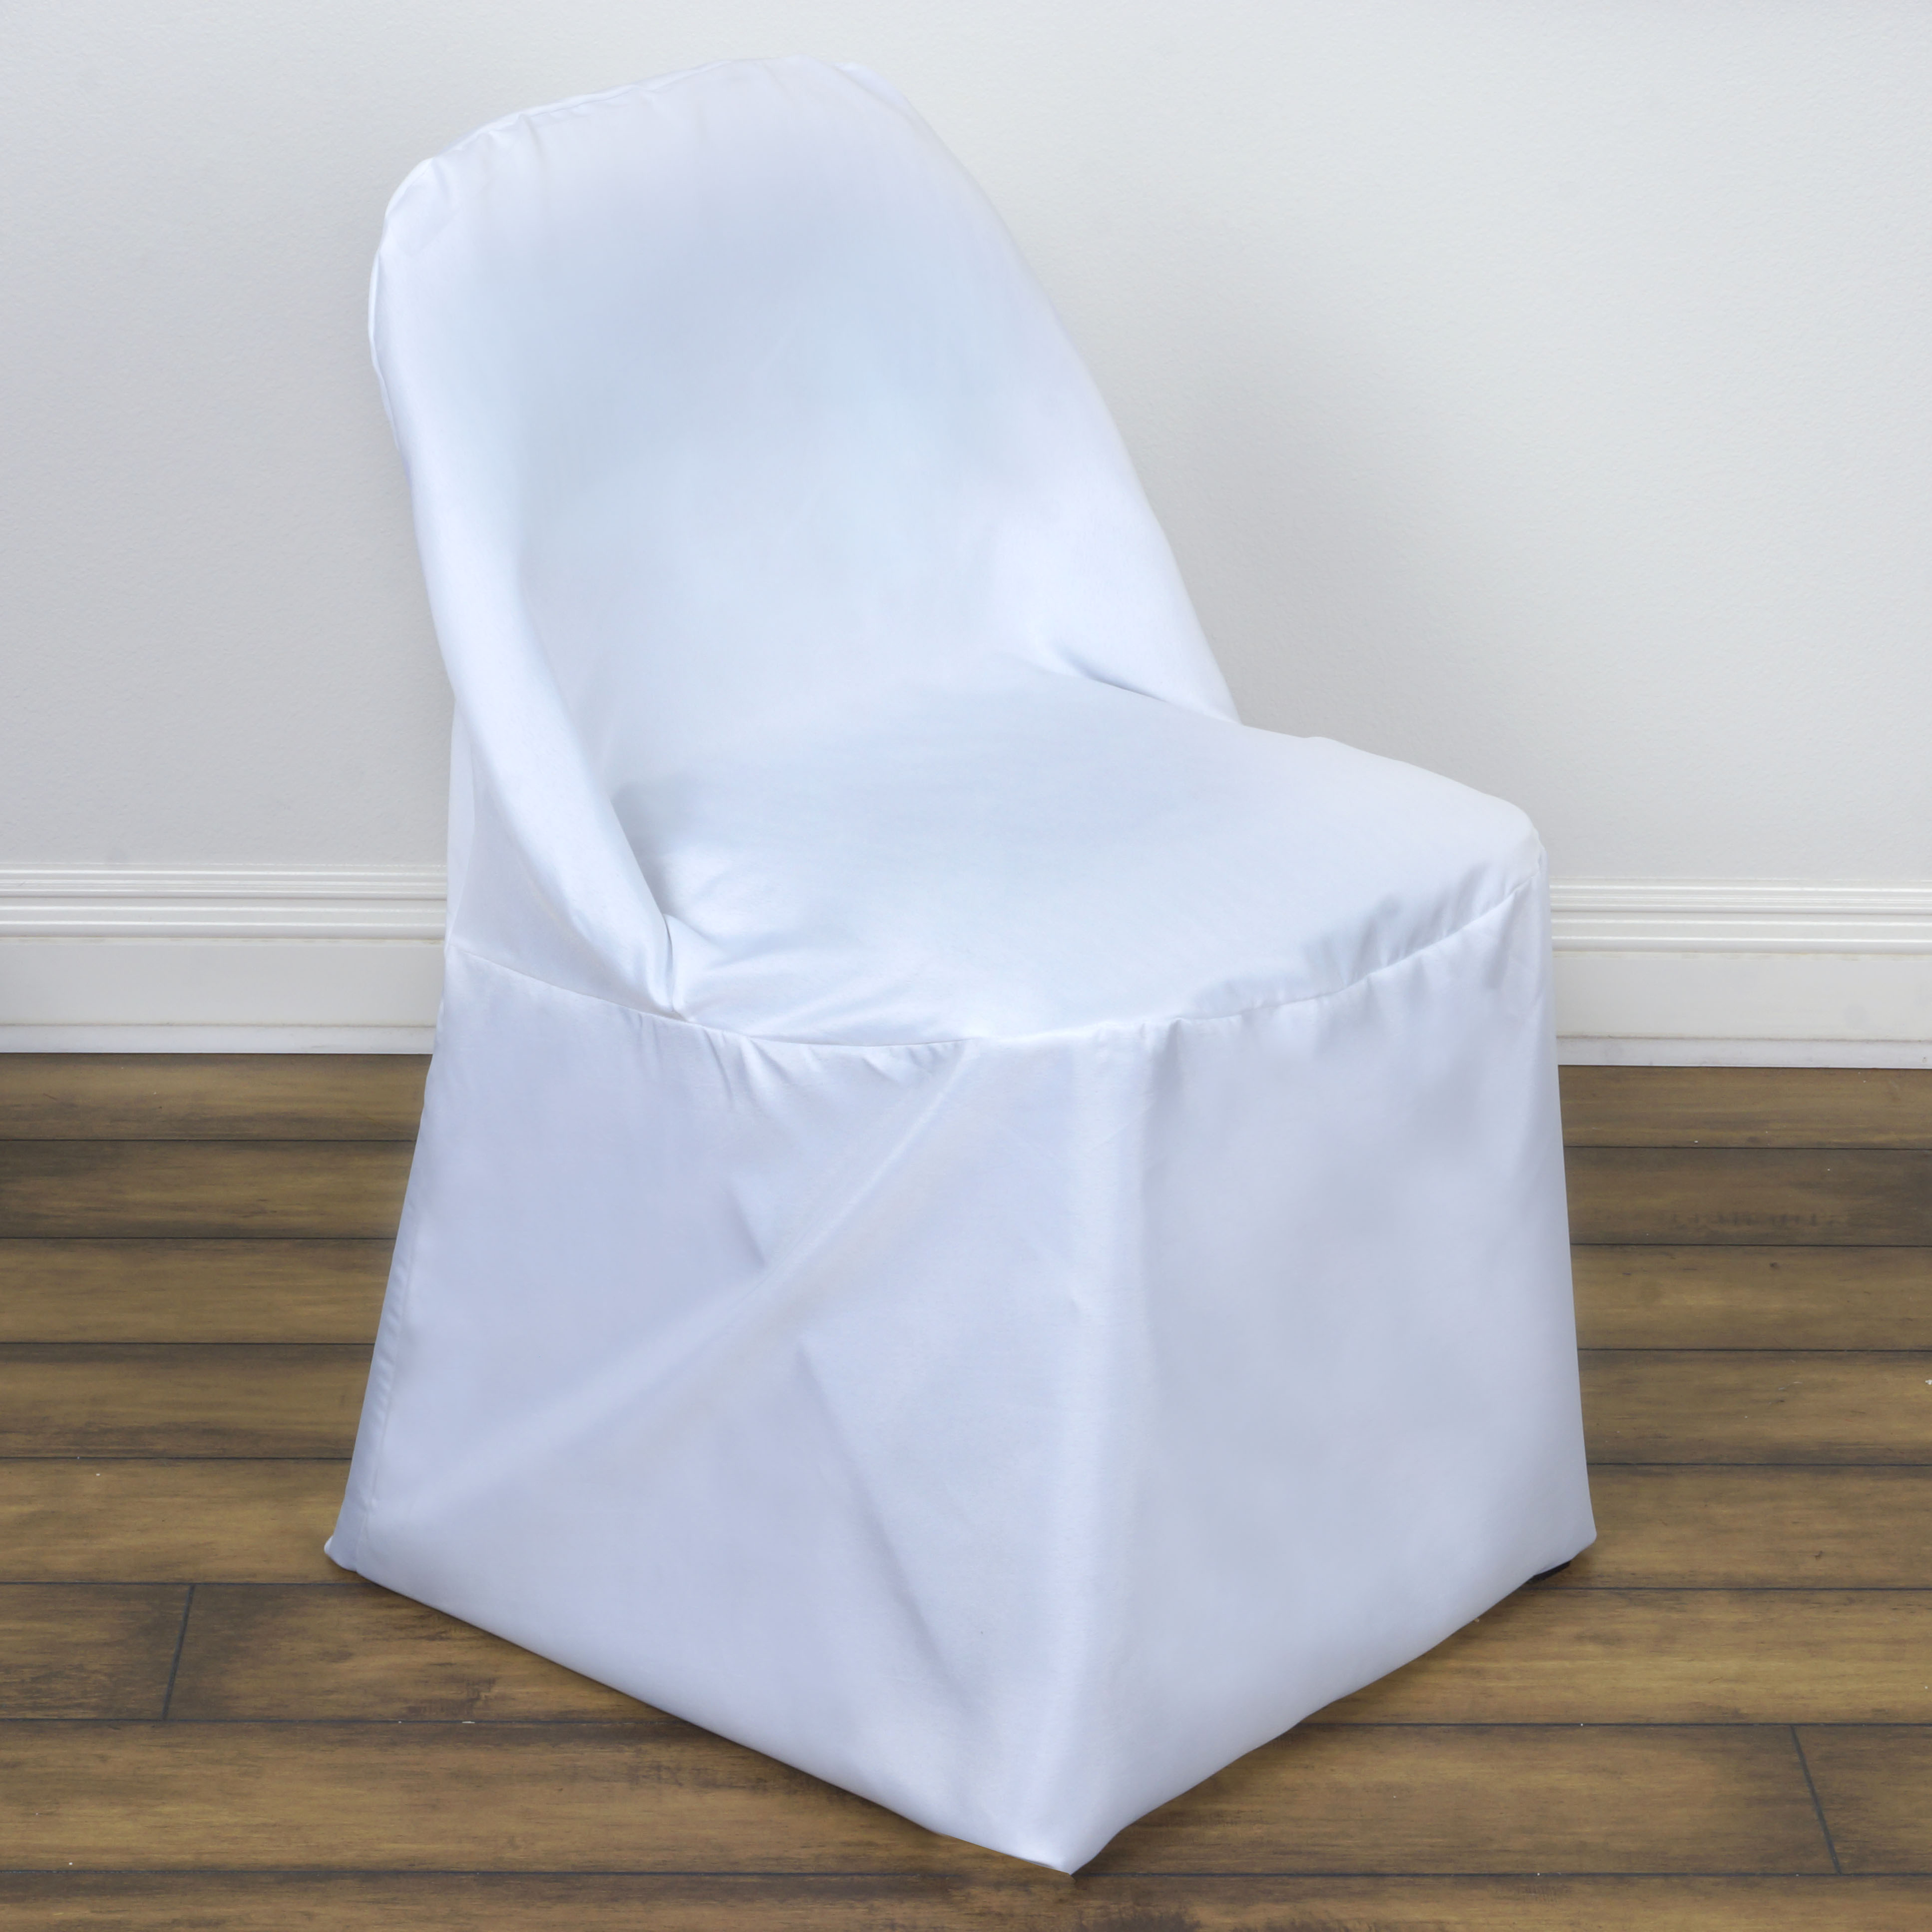 used banquet chair covers wholesale cover hire grays 75 pcs polyester round folding